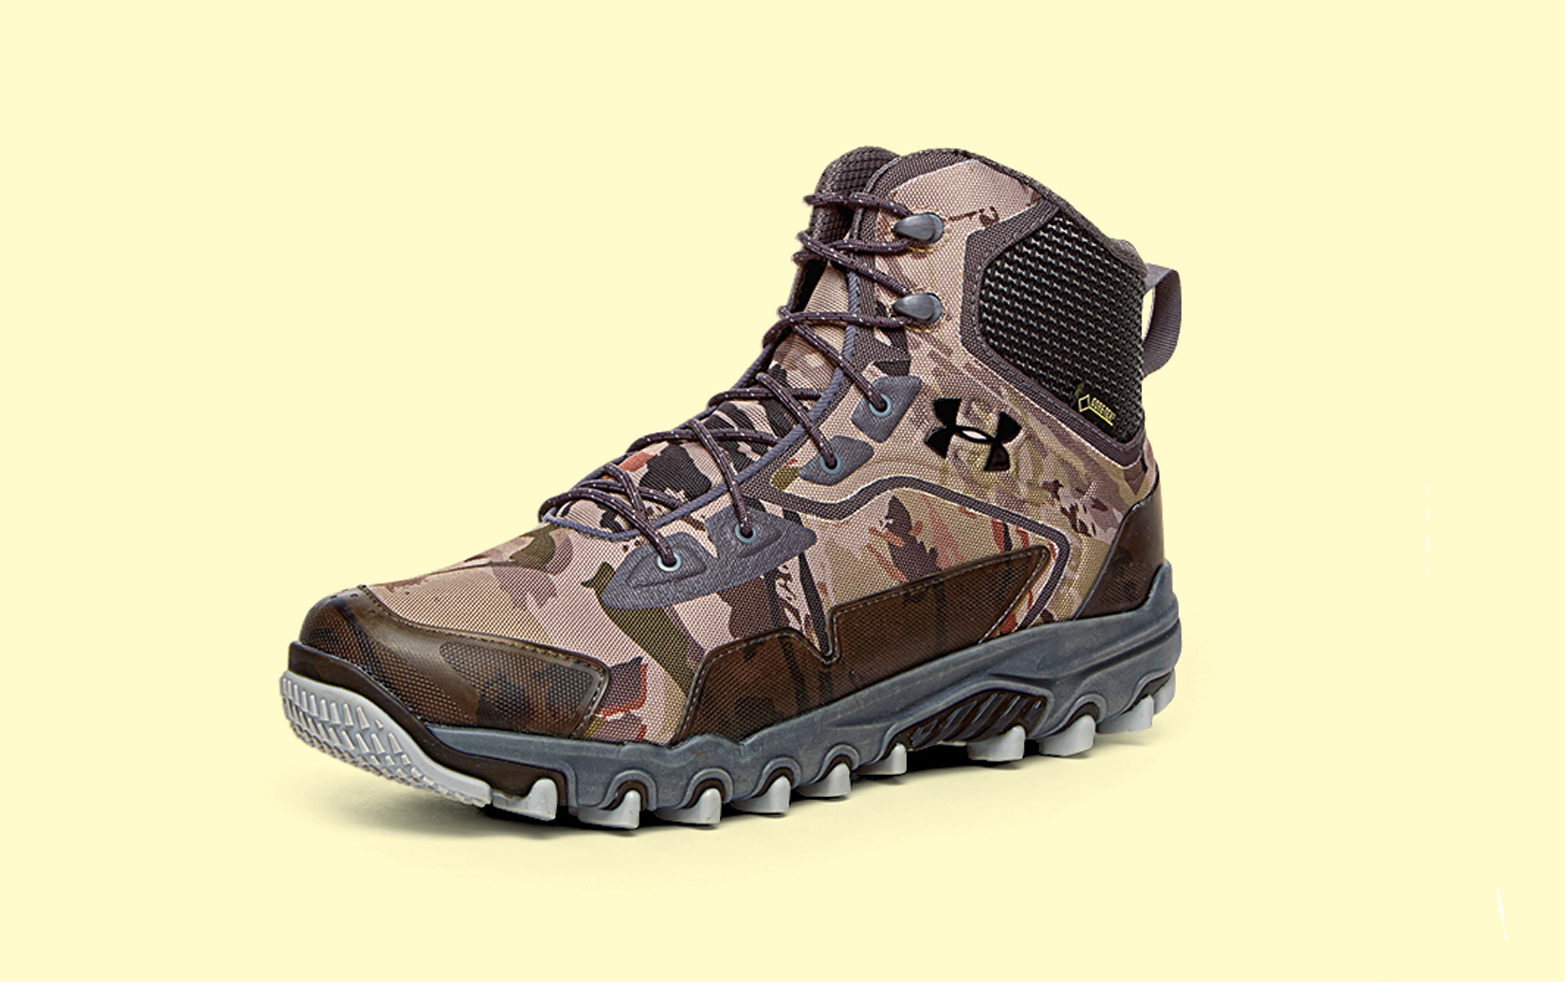 Three Lightweight Hunting Boots, Ranked